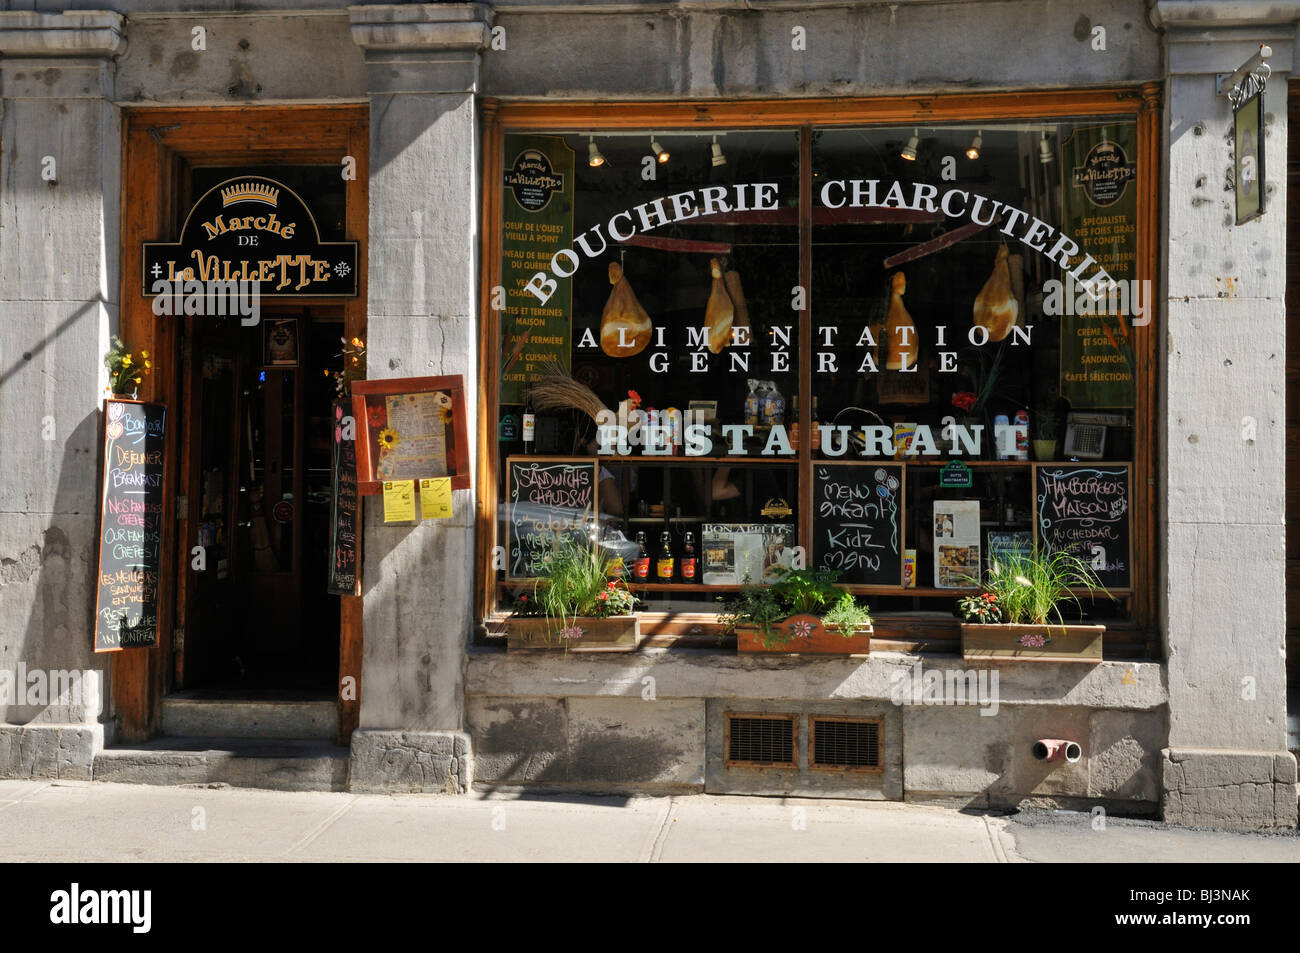 Entrance and window of a bistro restaurant in vieux for Restaurant window design